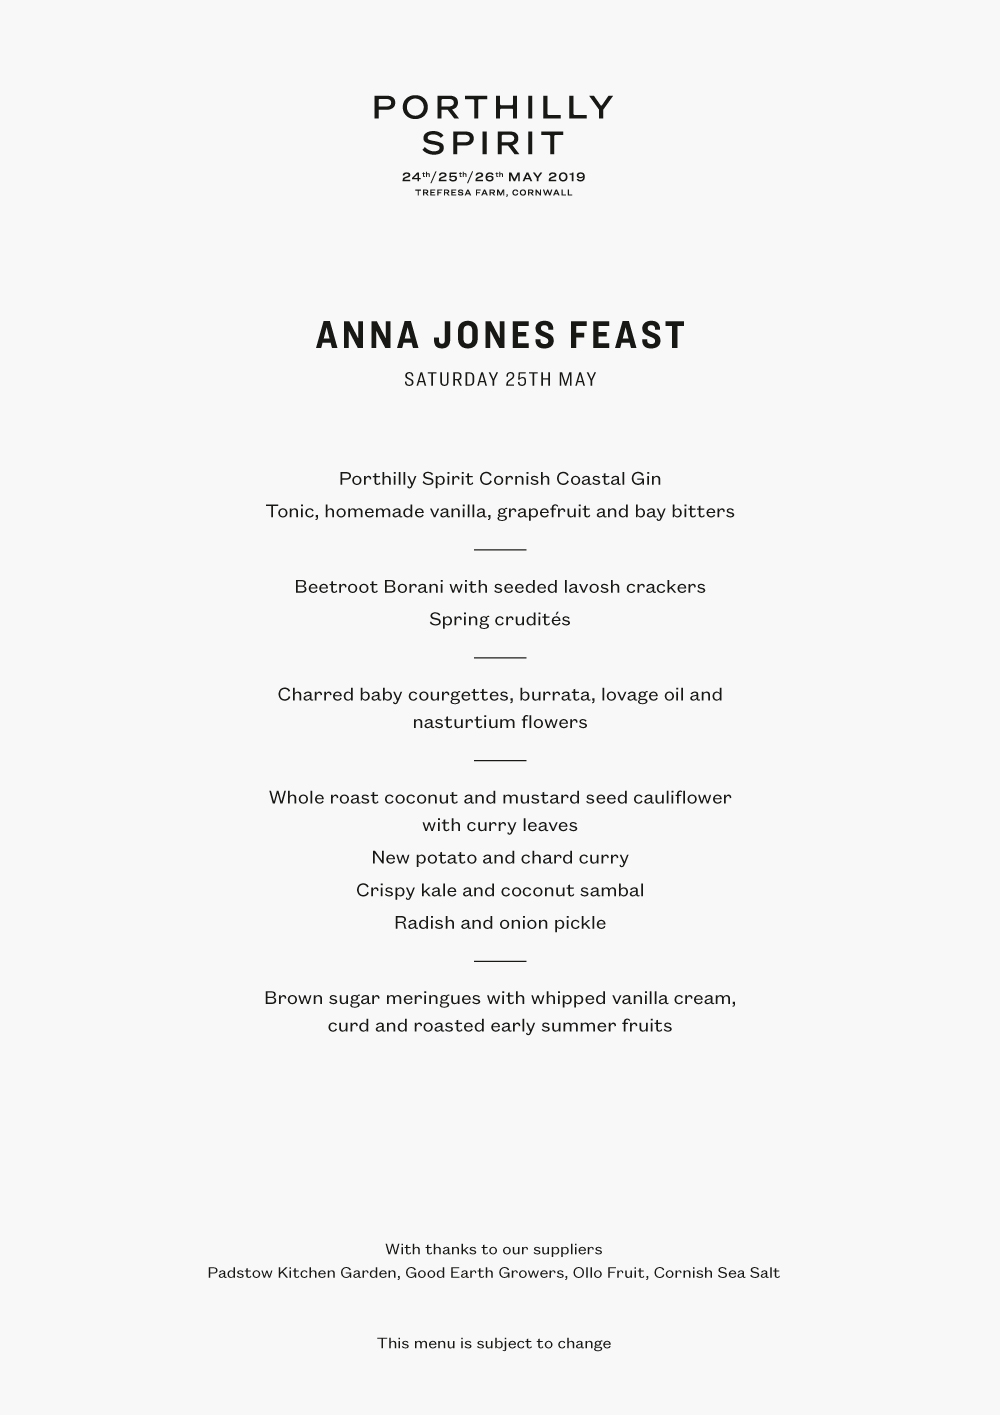 anna-jones-feast-menu.jpg